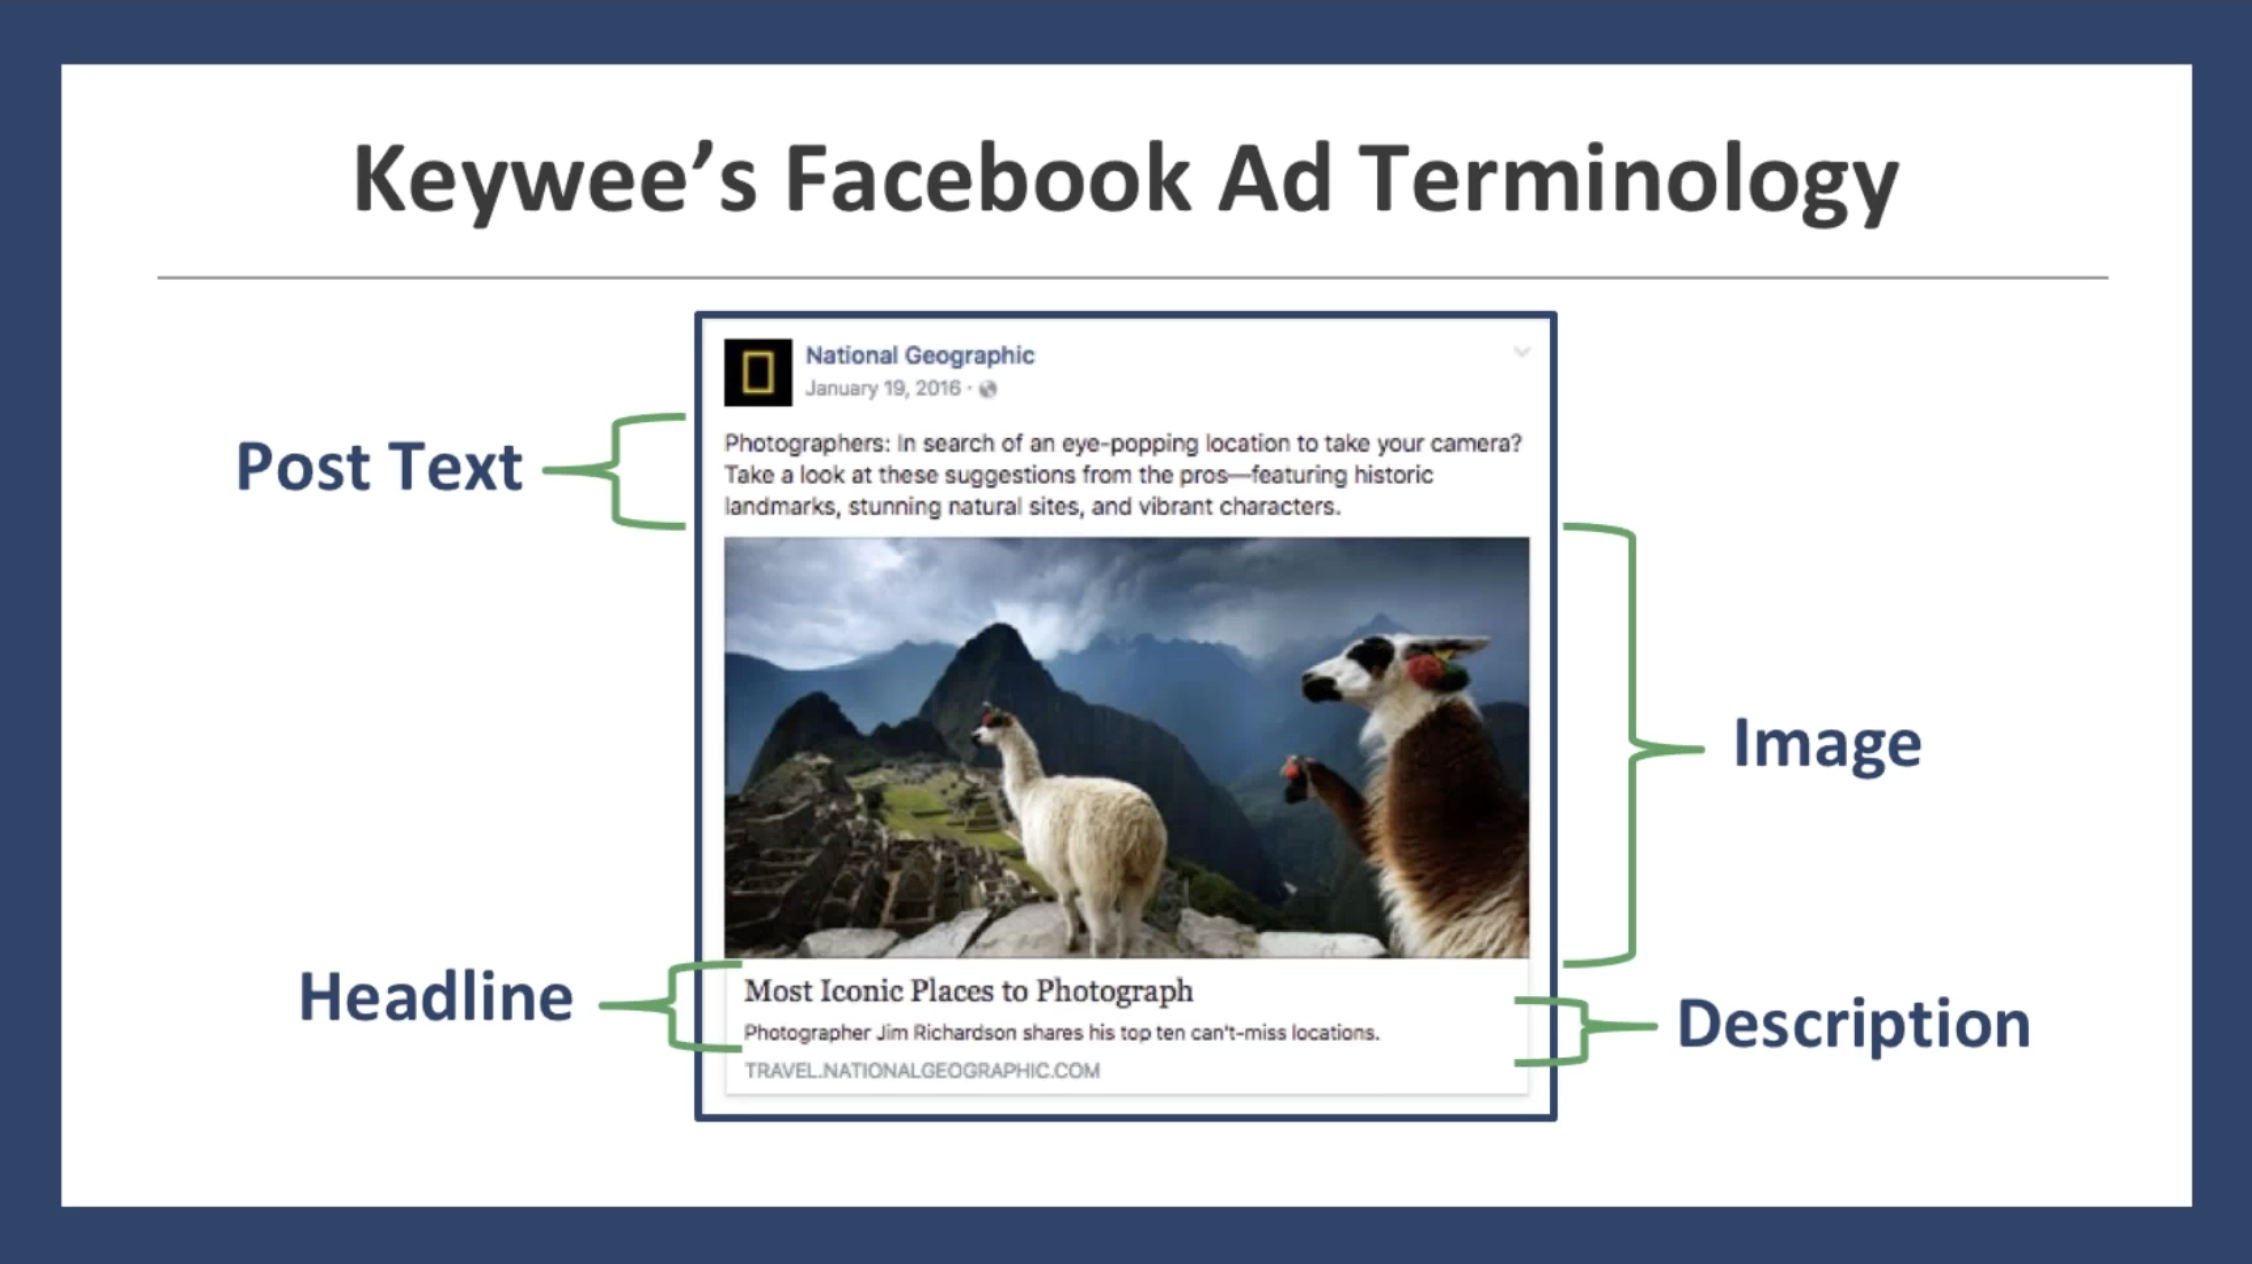 The image shows the different parts of a Facebook post or ad. Above the image is a section we call post text. Below the image in bold is the headline, and underneath it there is a description.